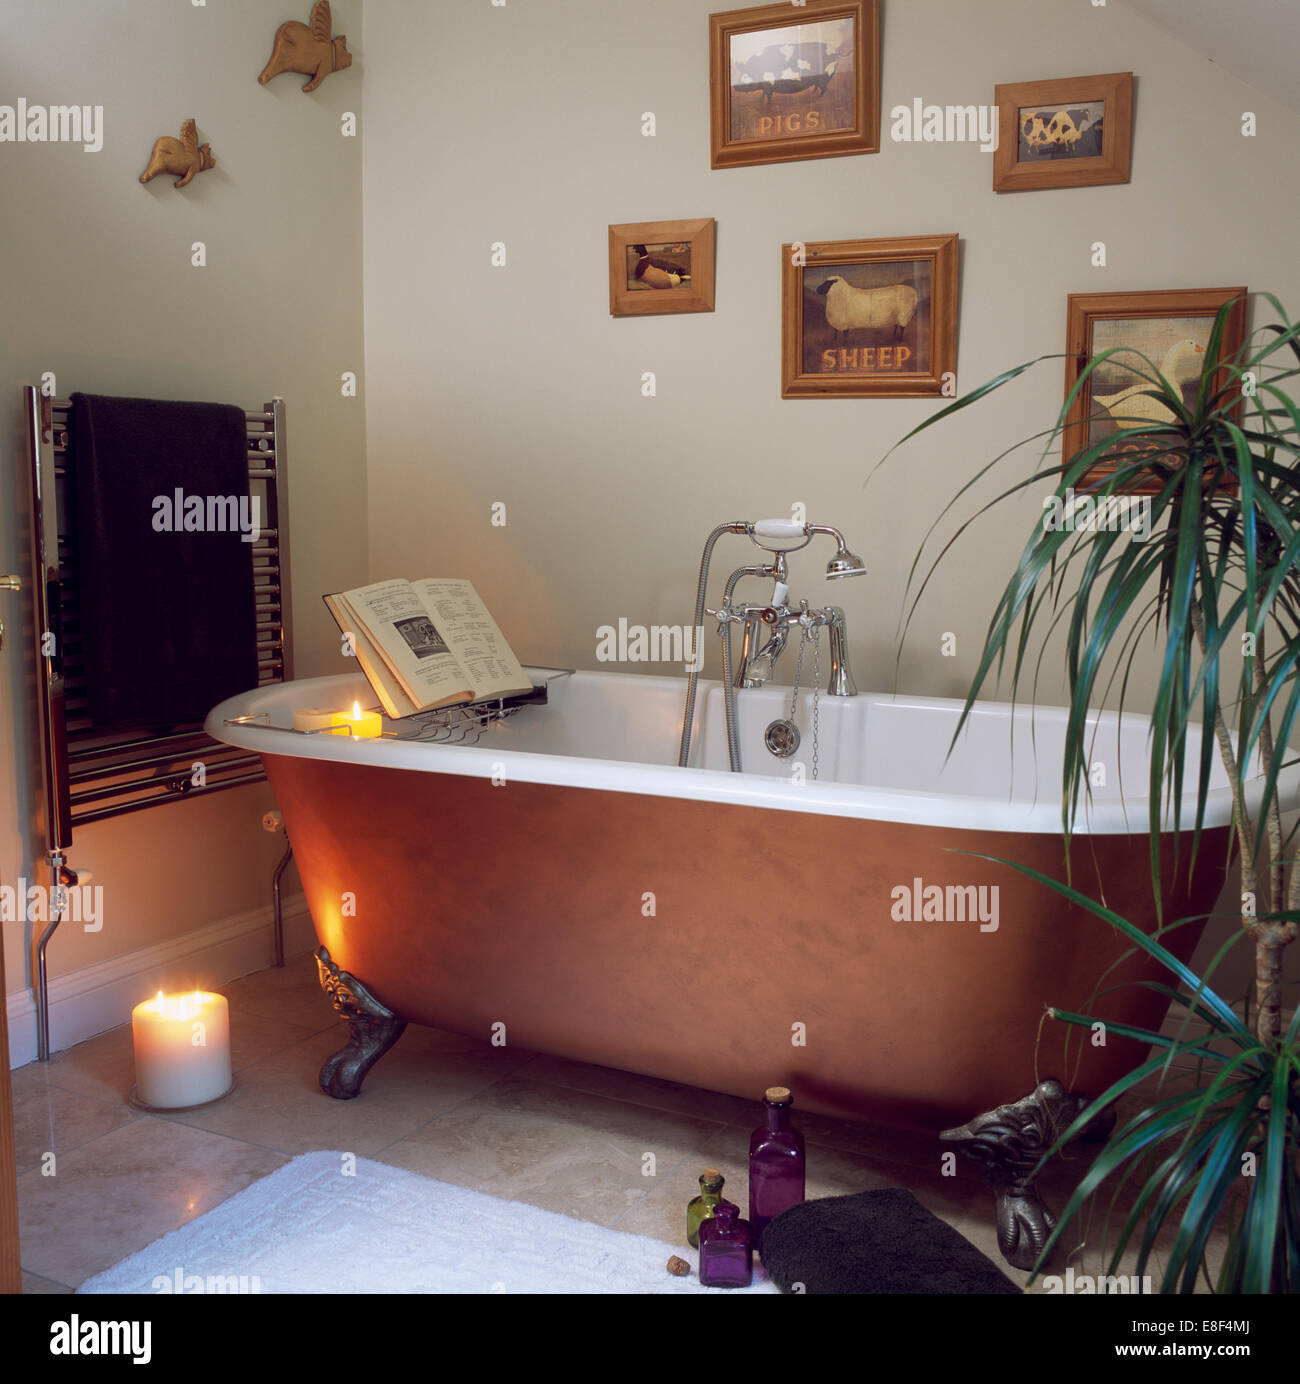 Lighted candle on floor in traditional bathroom with book propped on ...